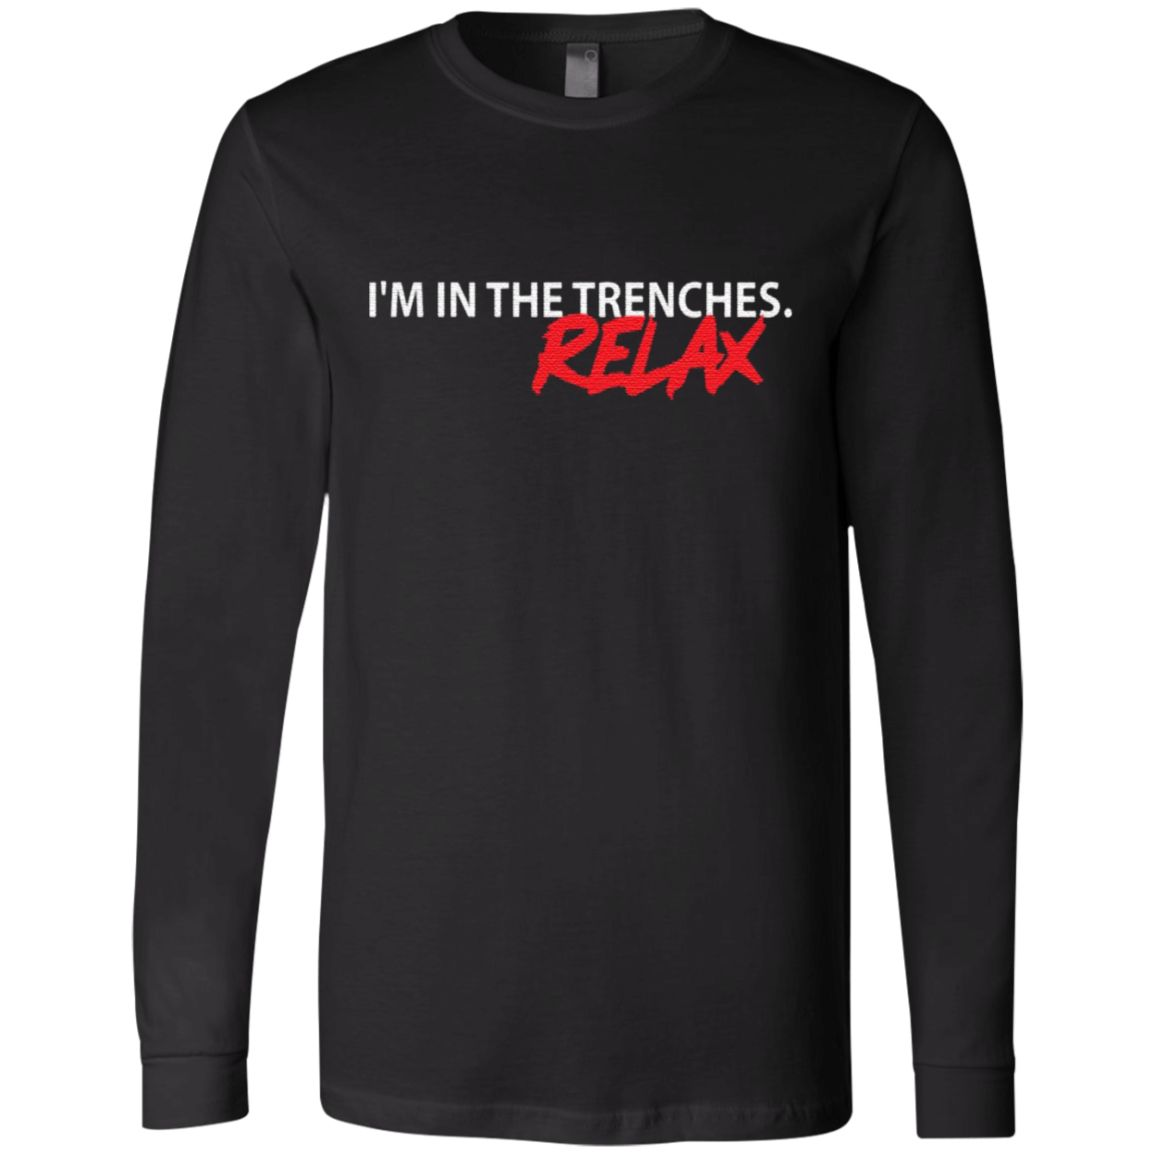 I'm In The Trenches Relax T Shirt